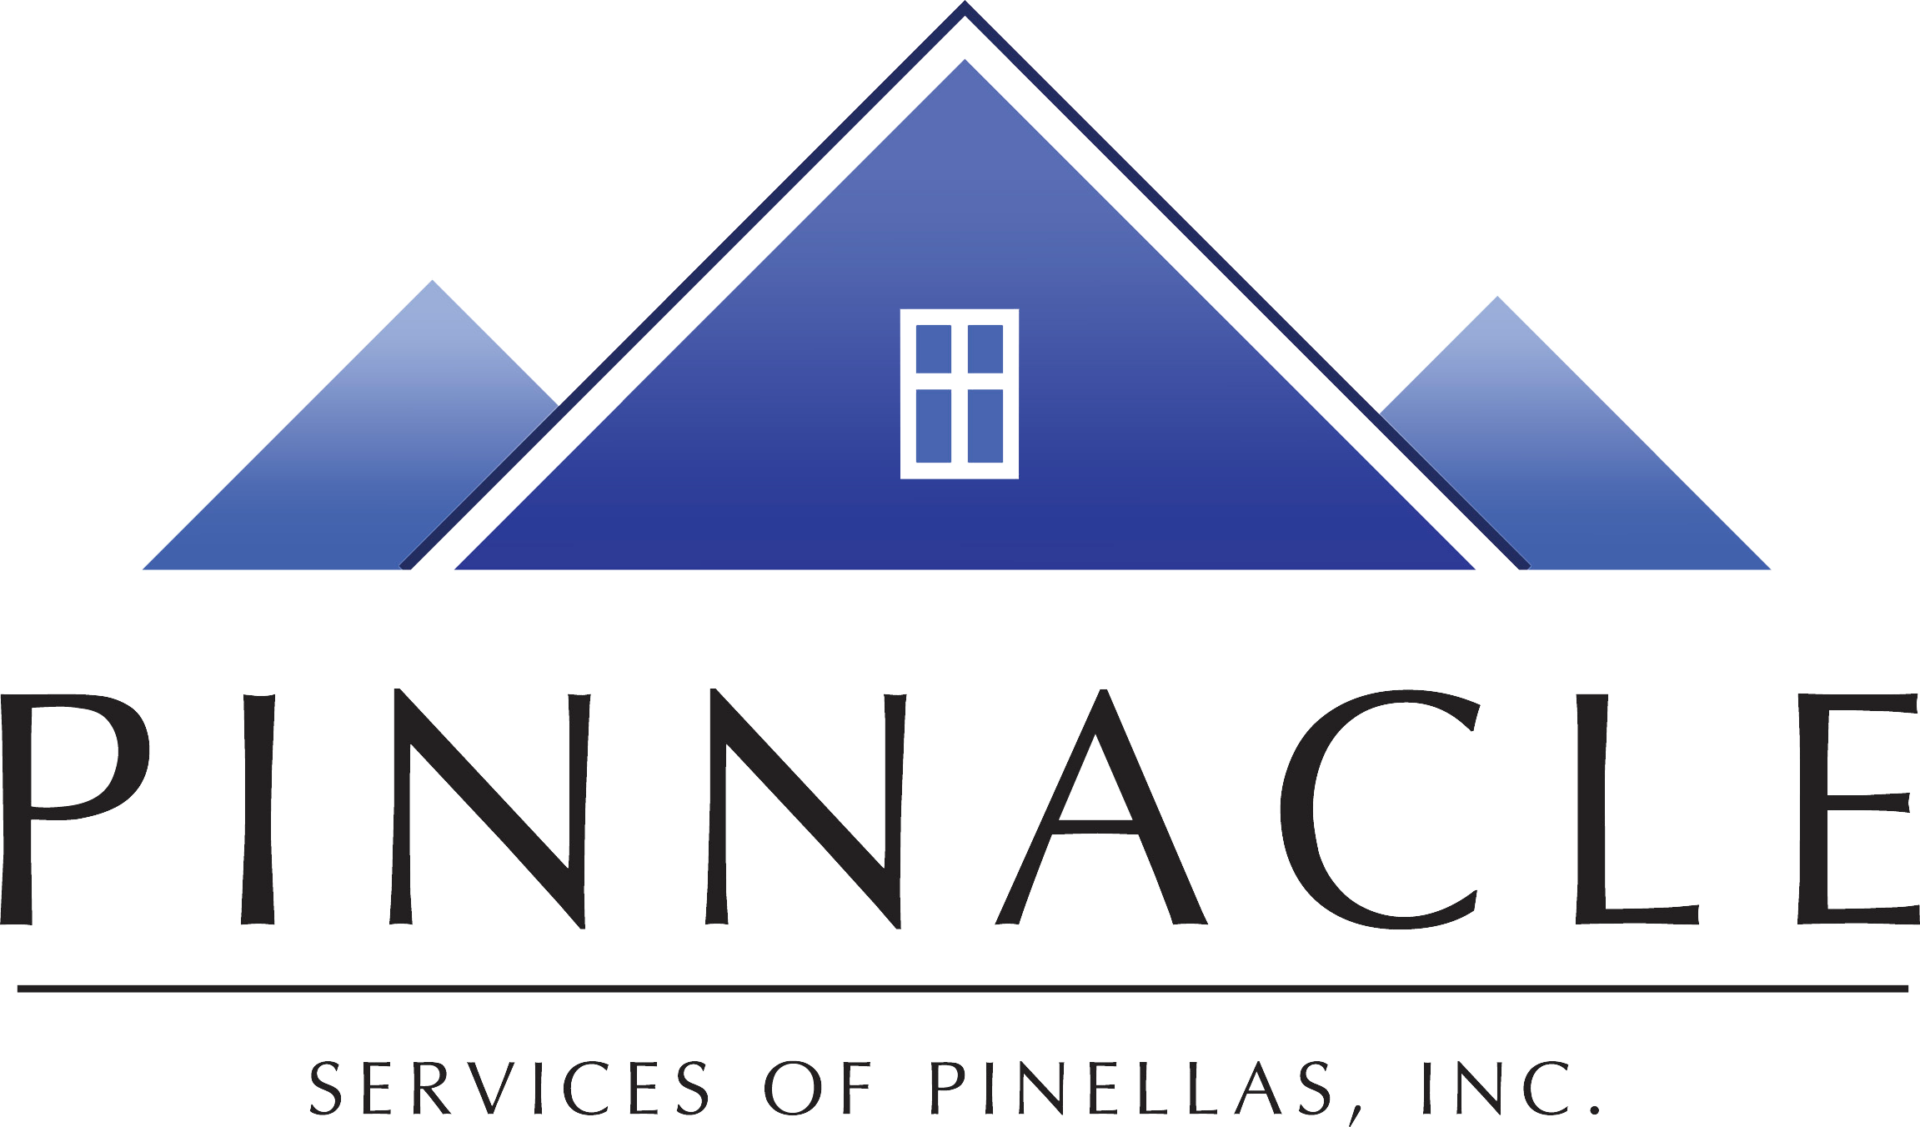 Pinnacle Services of Pinellas, Inc.